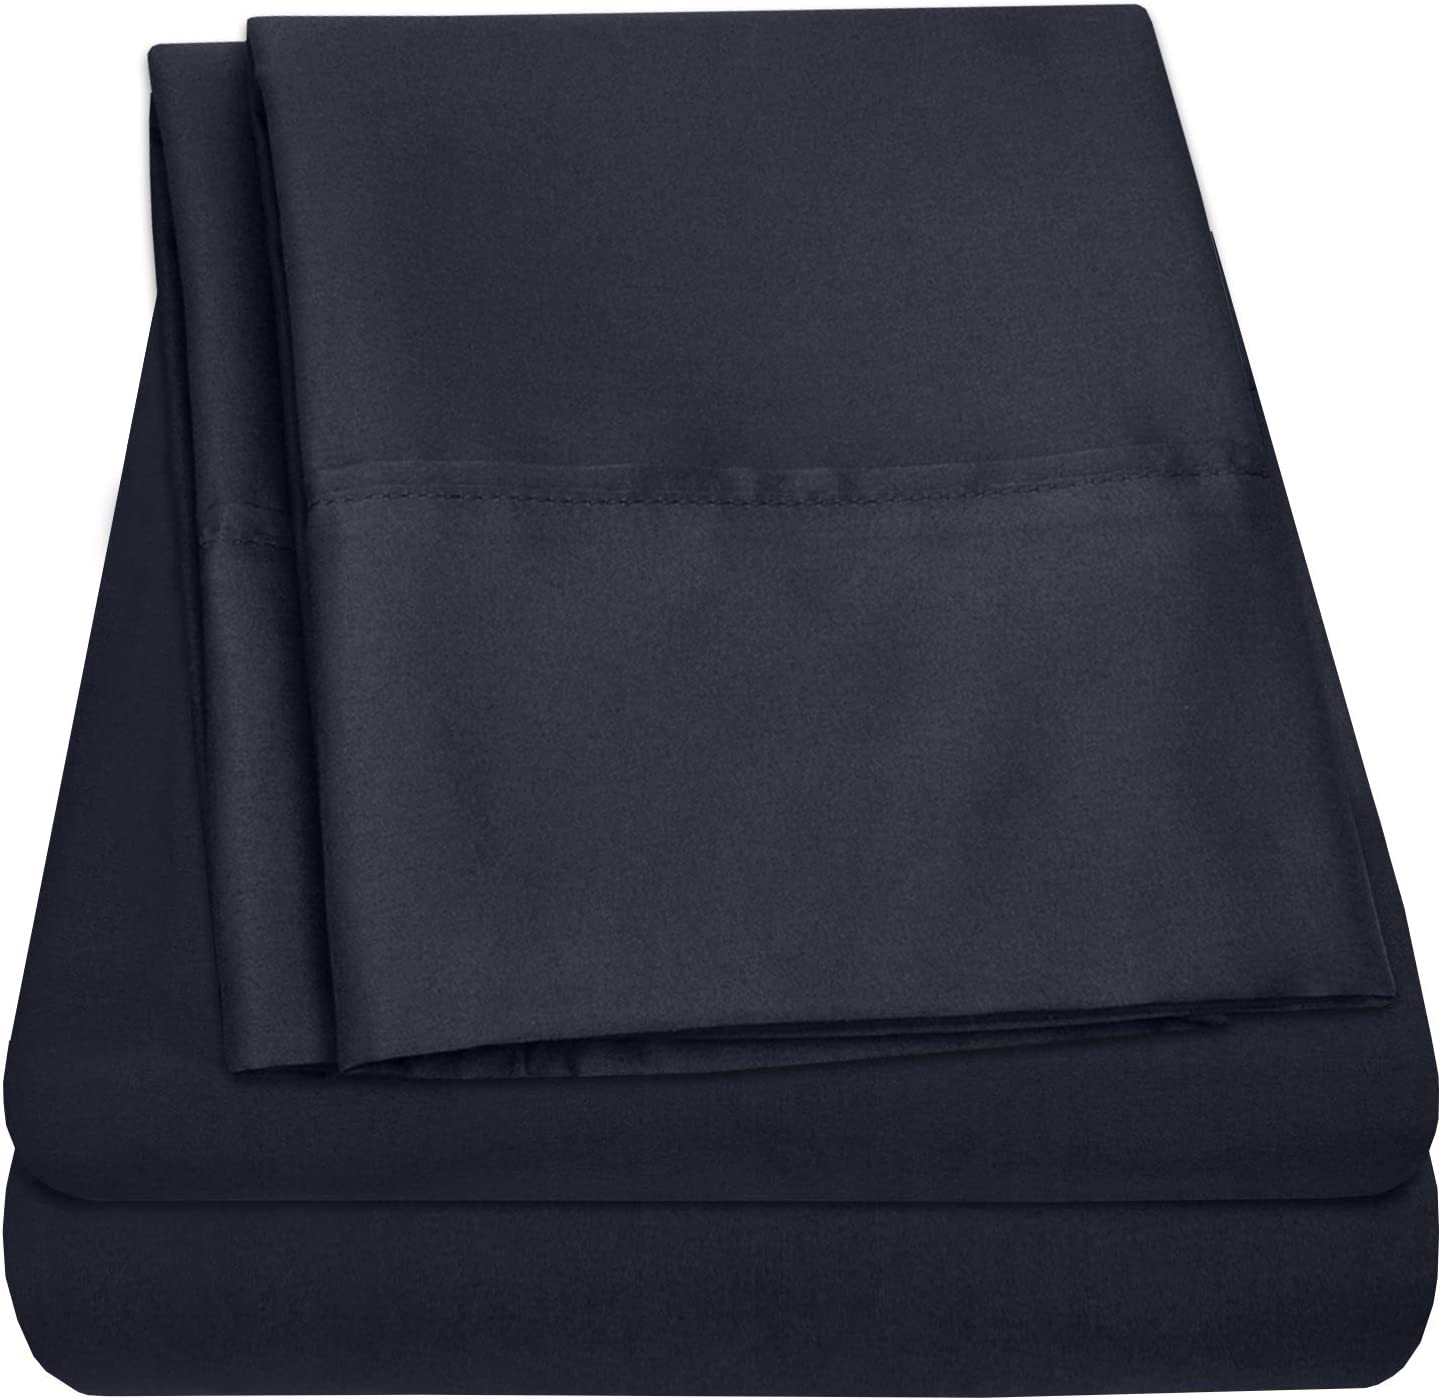 Premium Cotton Percale Bed Sheets - 100% Pure Cotton Egyptian Sheet Set- Made in Egypt - Extremely Soft Sheeting, Deep Pocket, Refreshingly Cool, Everlasting Comfort Bed Sheets - King, Navy